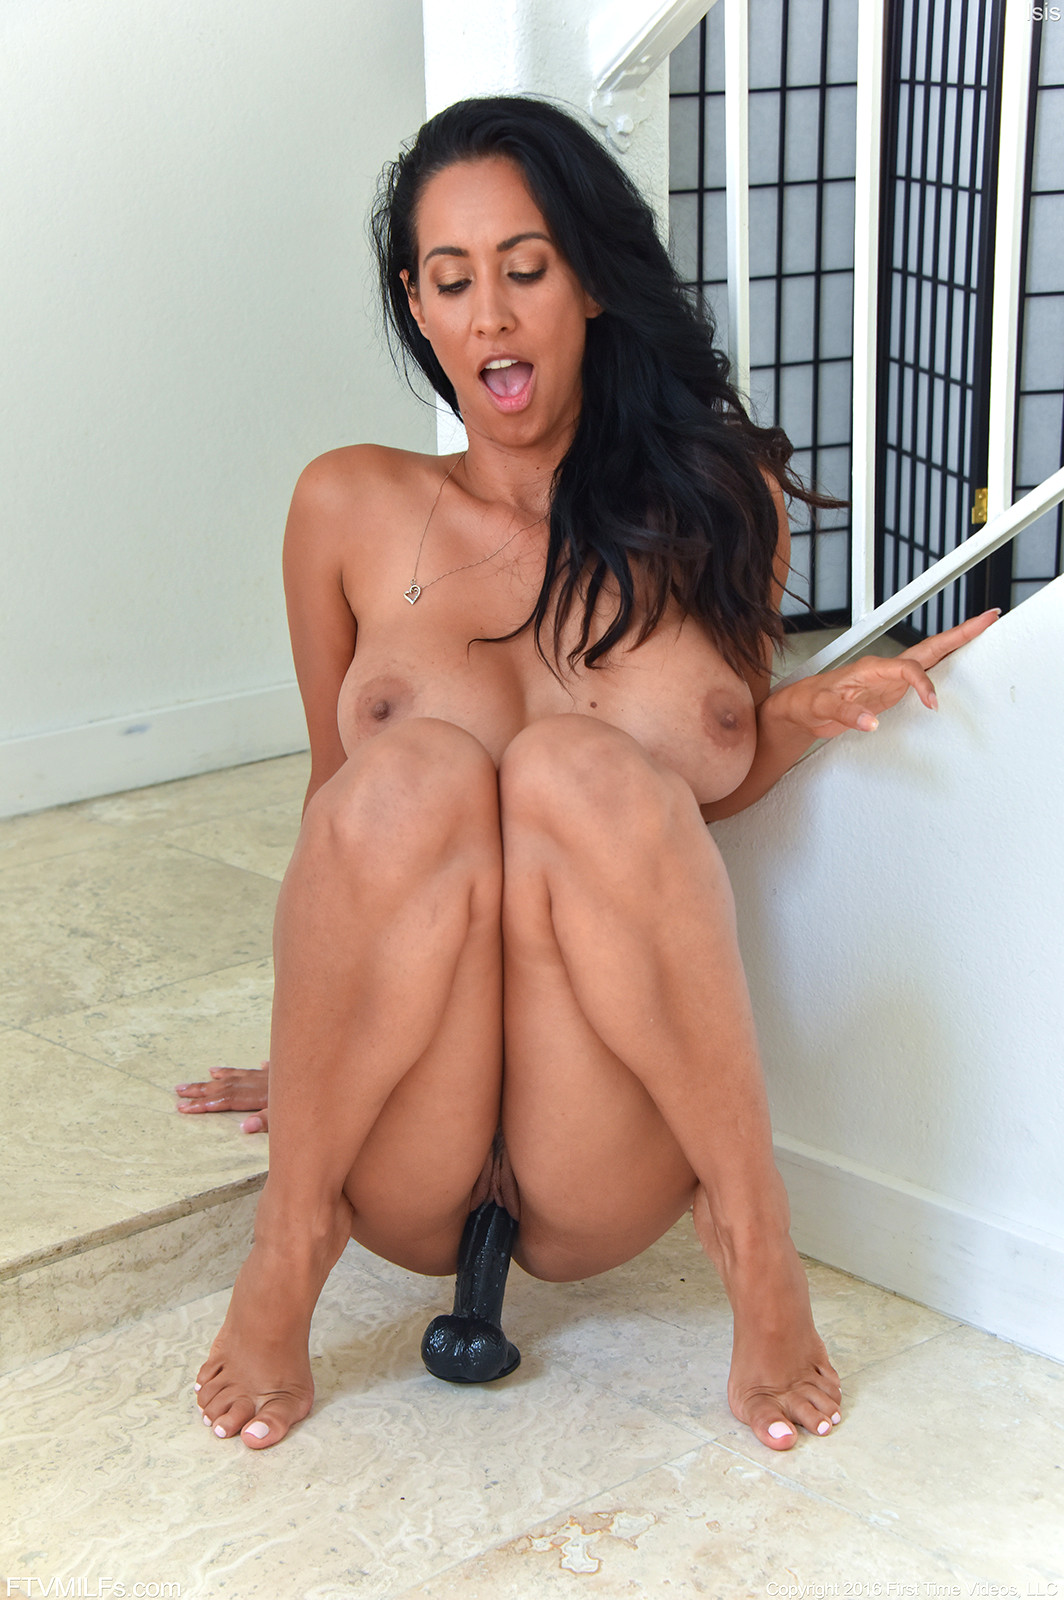 Best rated dildo like this